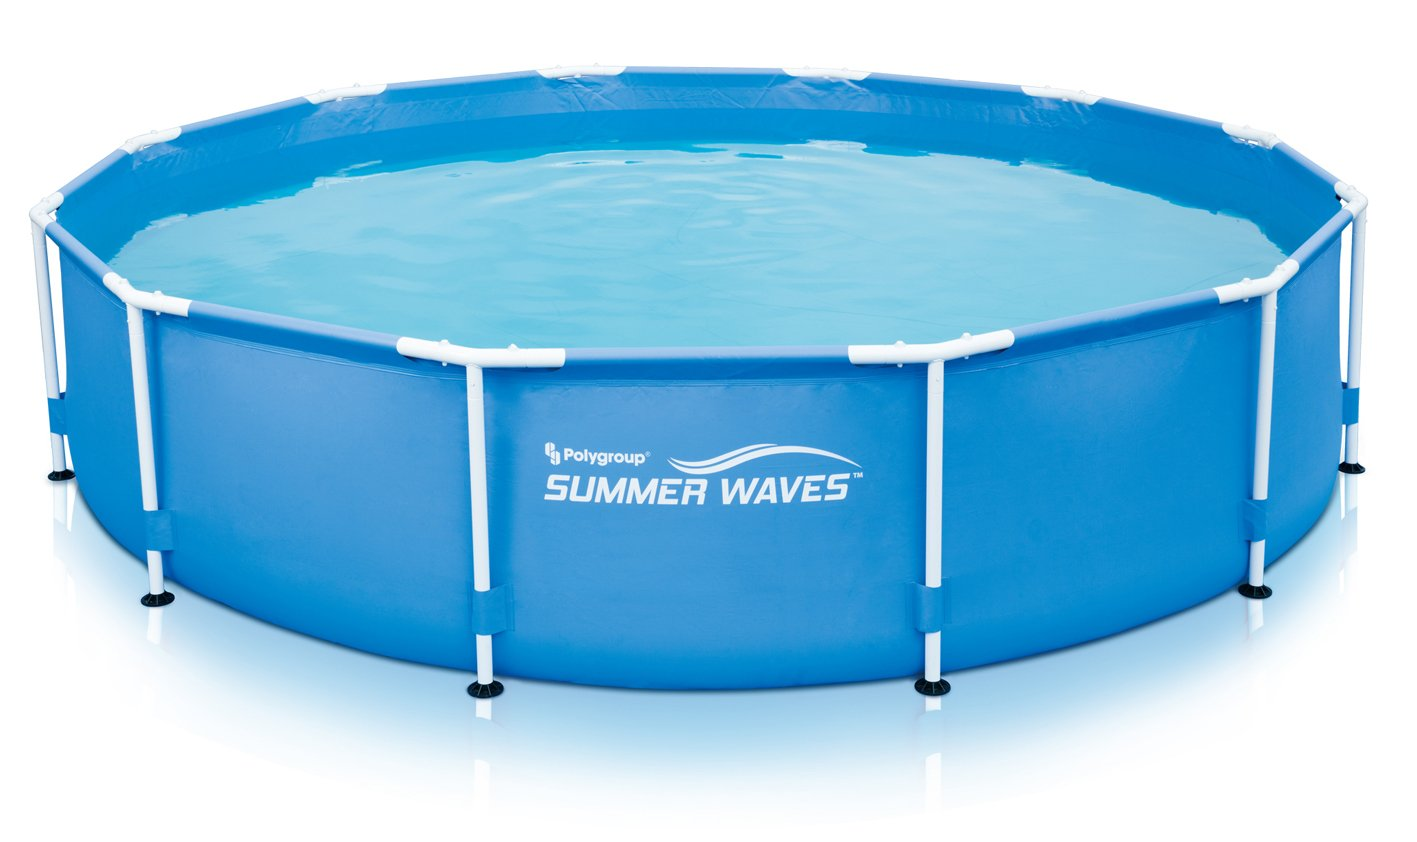 Summer waves p2001030a156 metal frame pool with filter kit for Portable pond filter